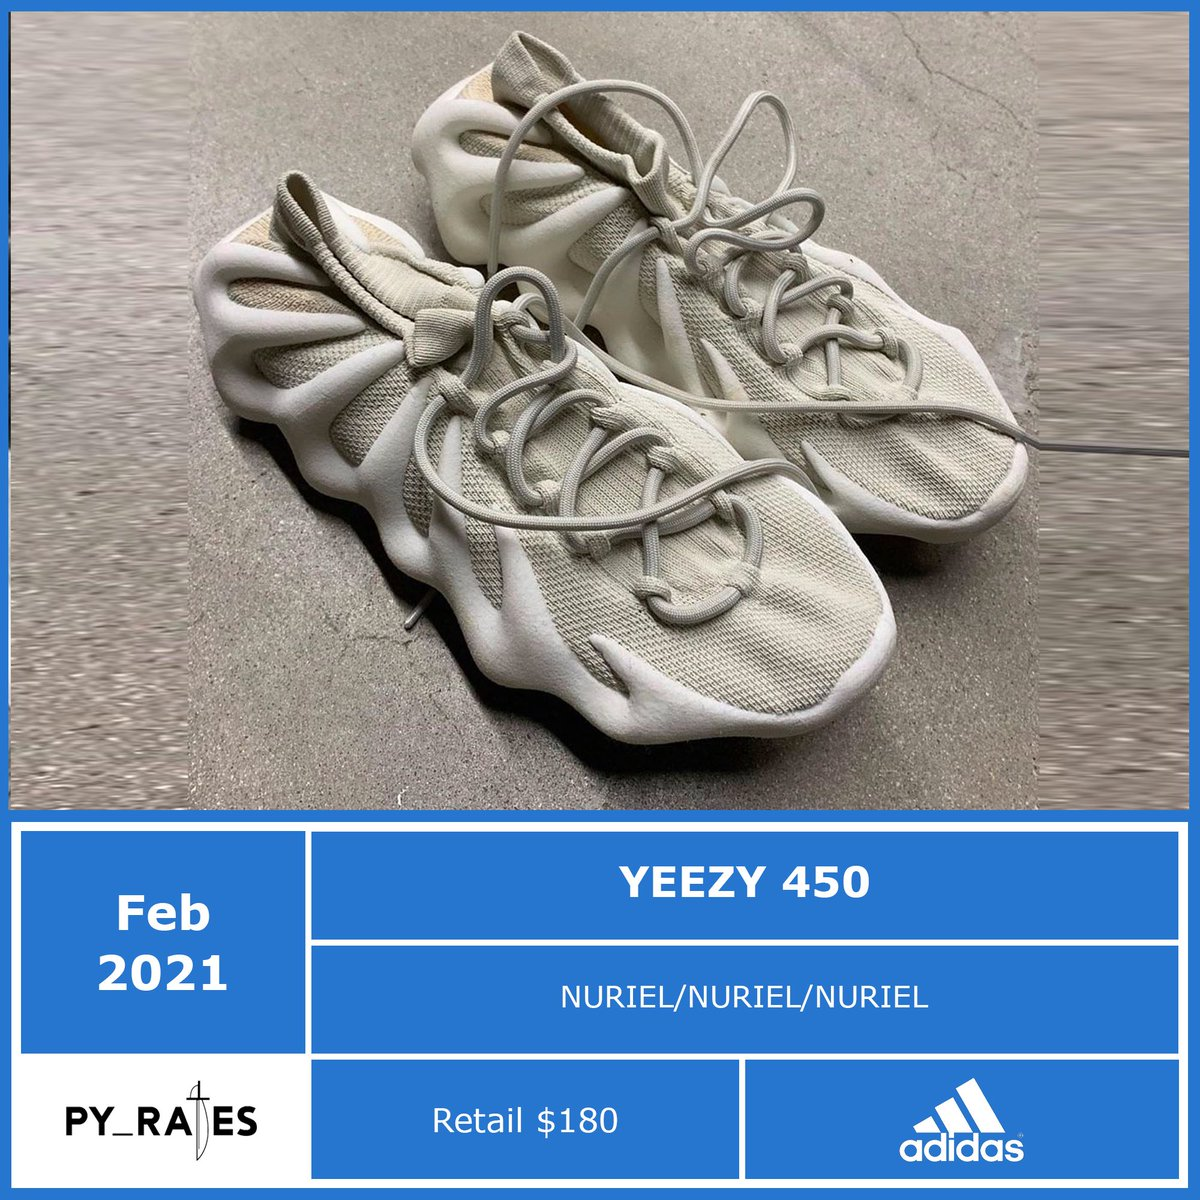 adidas Yeezy 450 Release Date